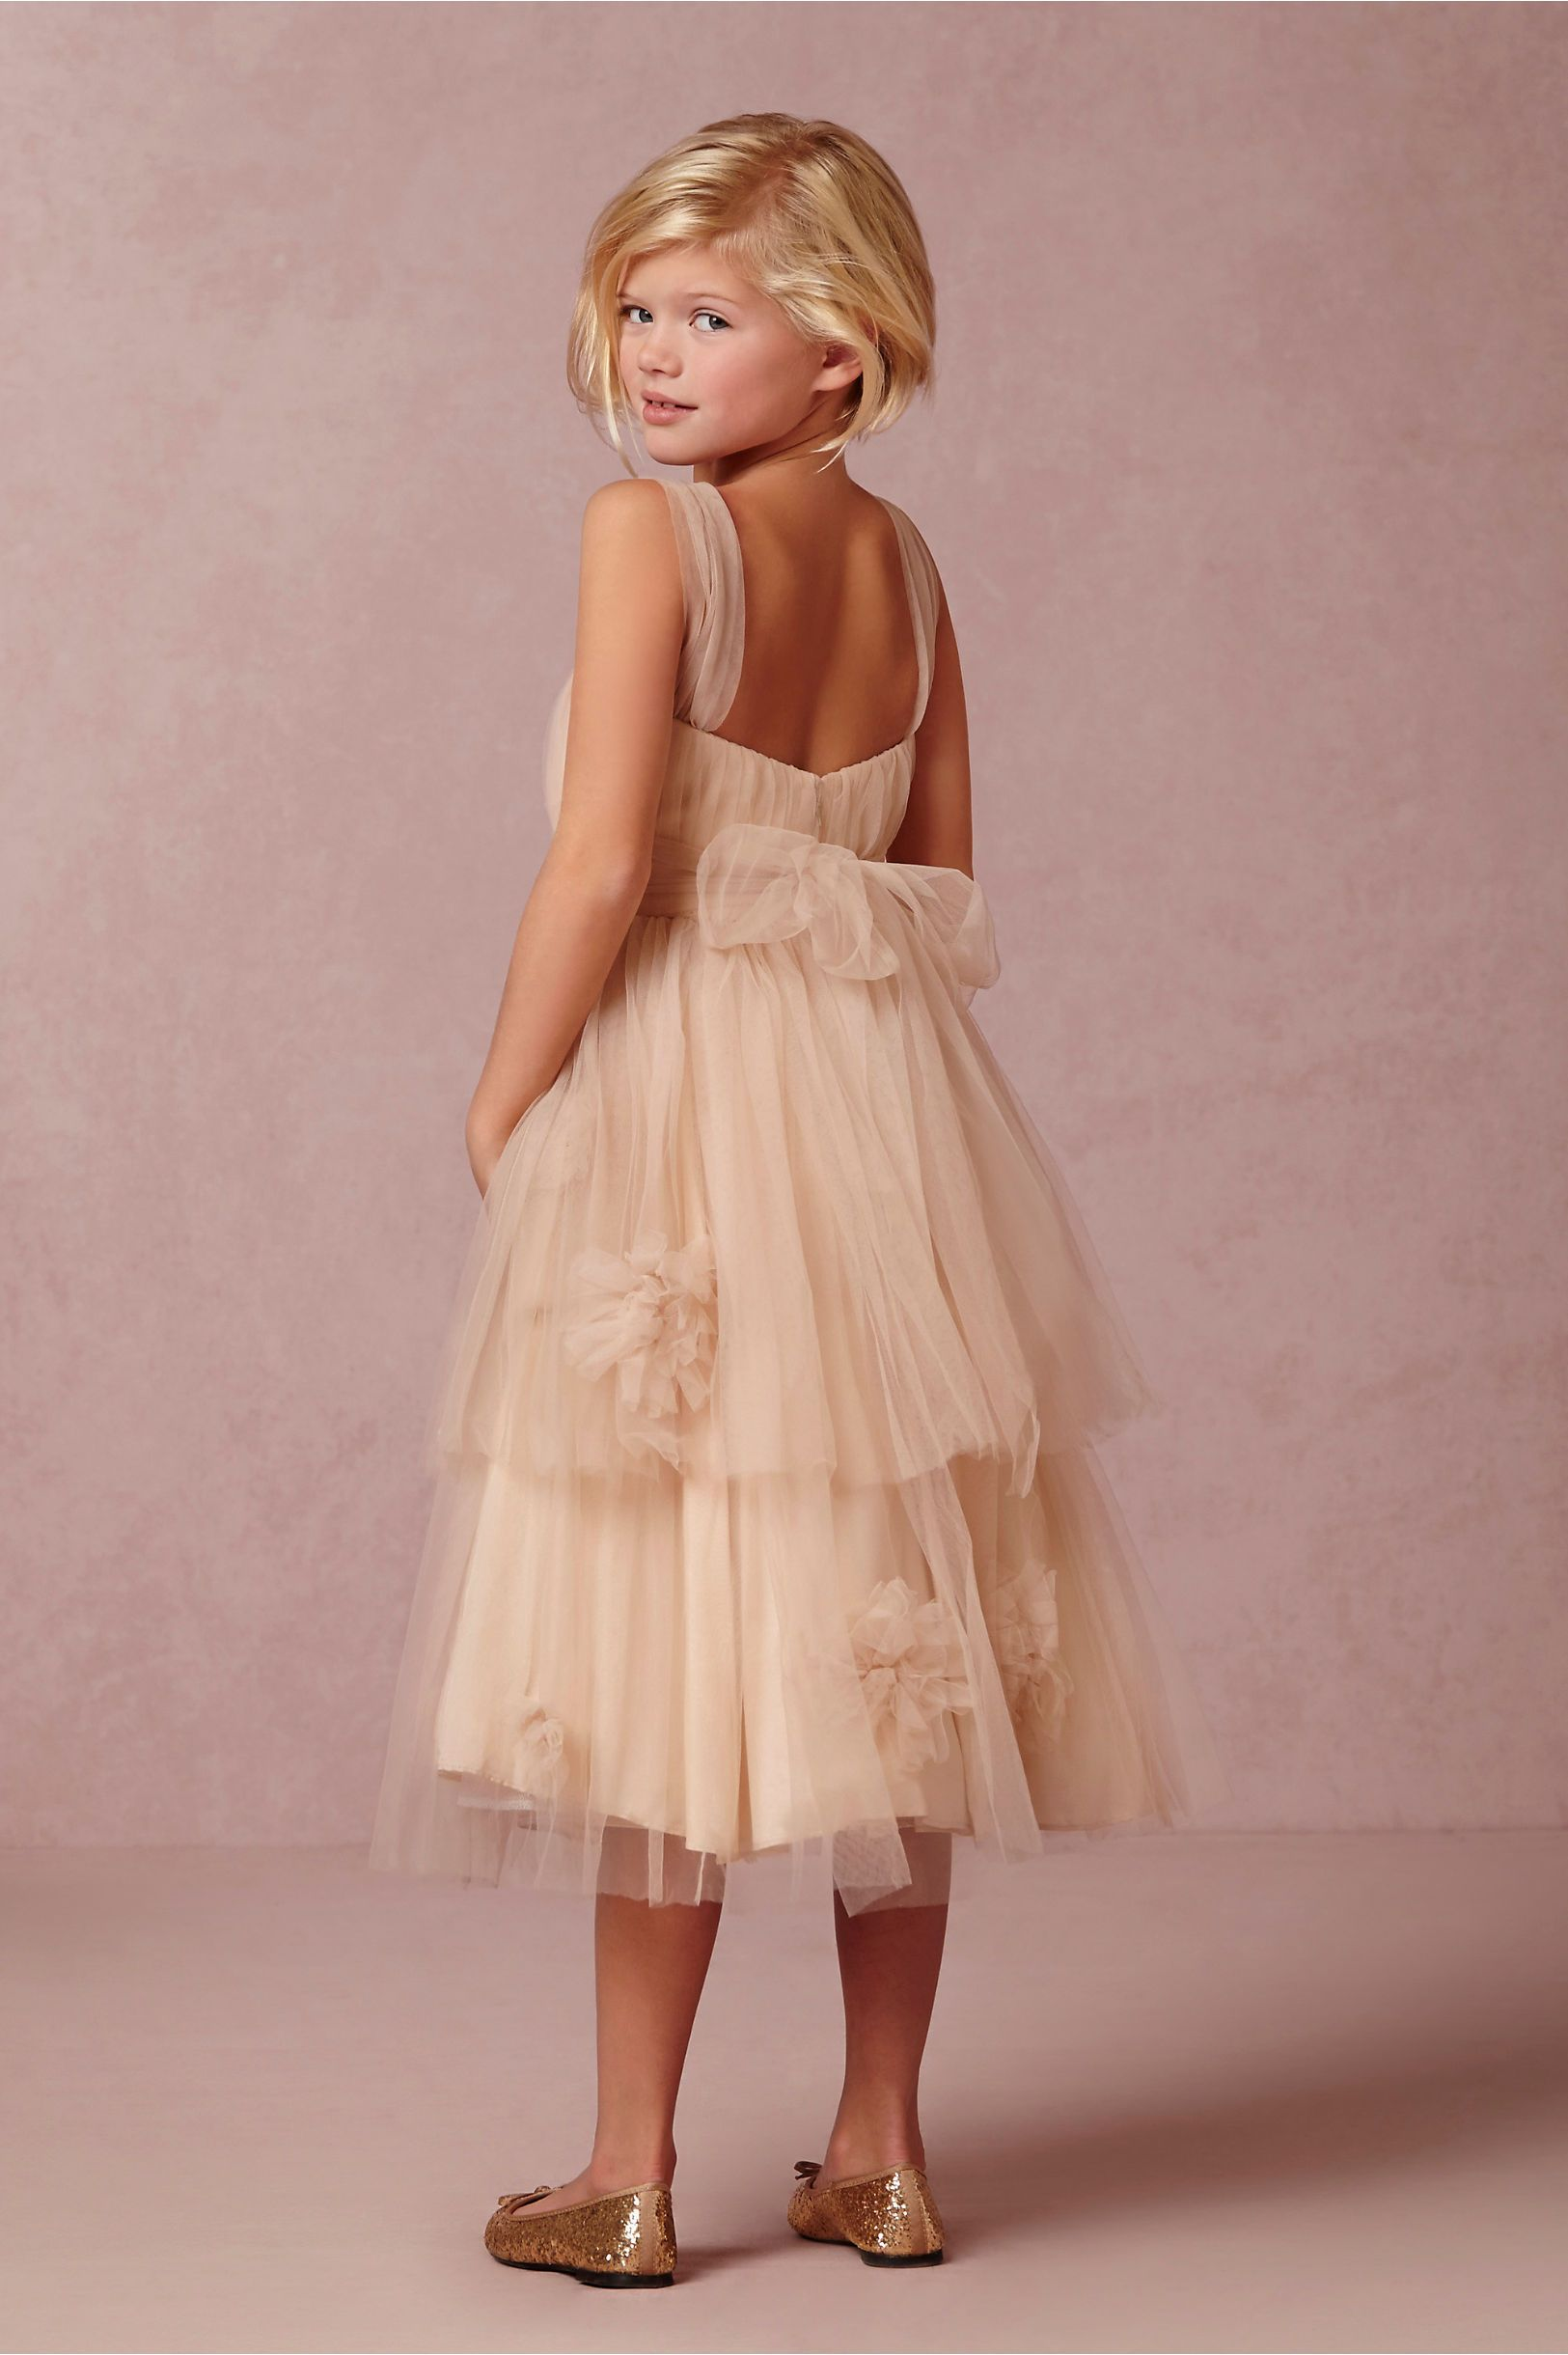 928631fcb09 Colette Dress in Dresses Flower Girl Dresses at BHLDN